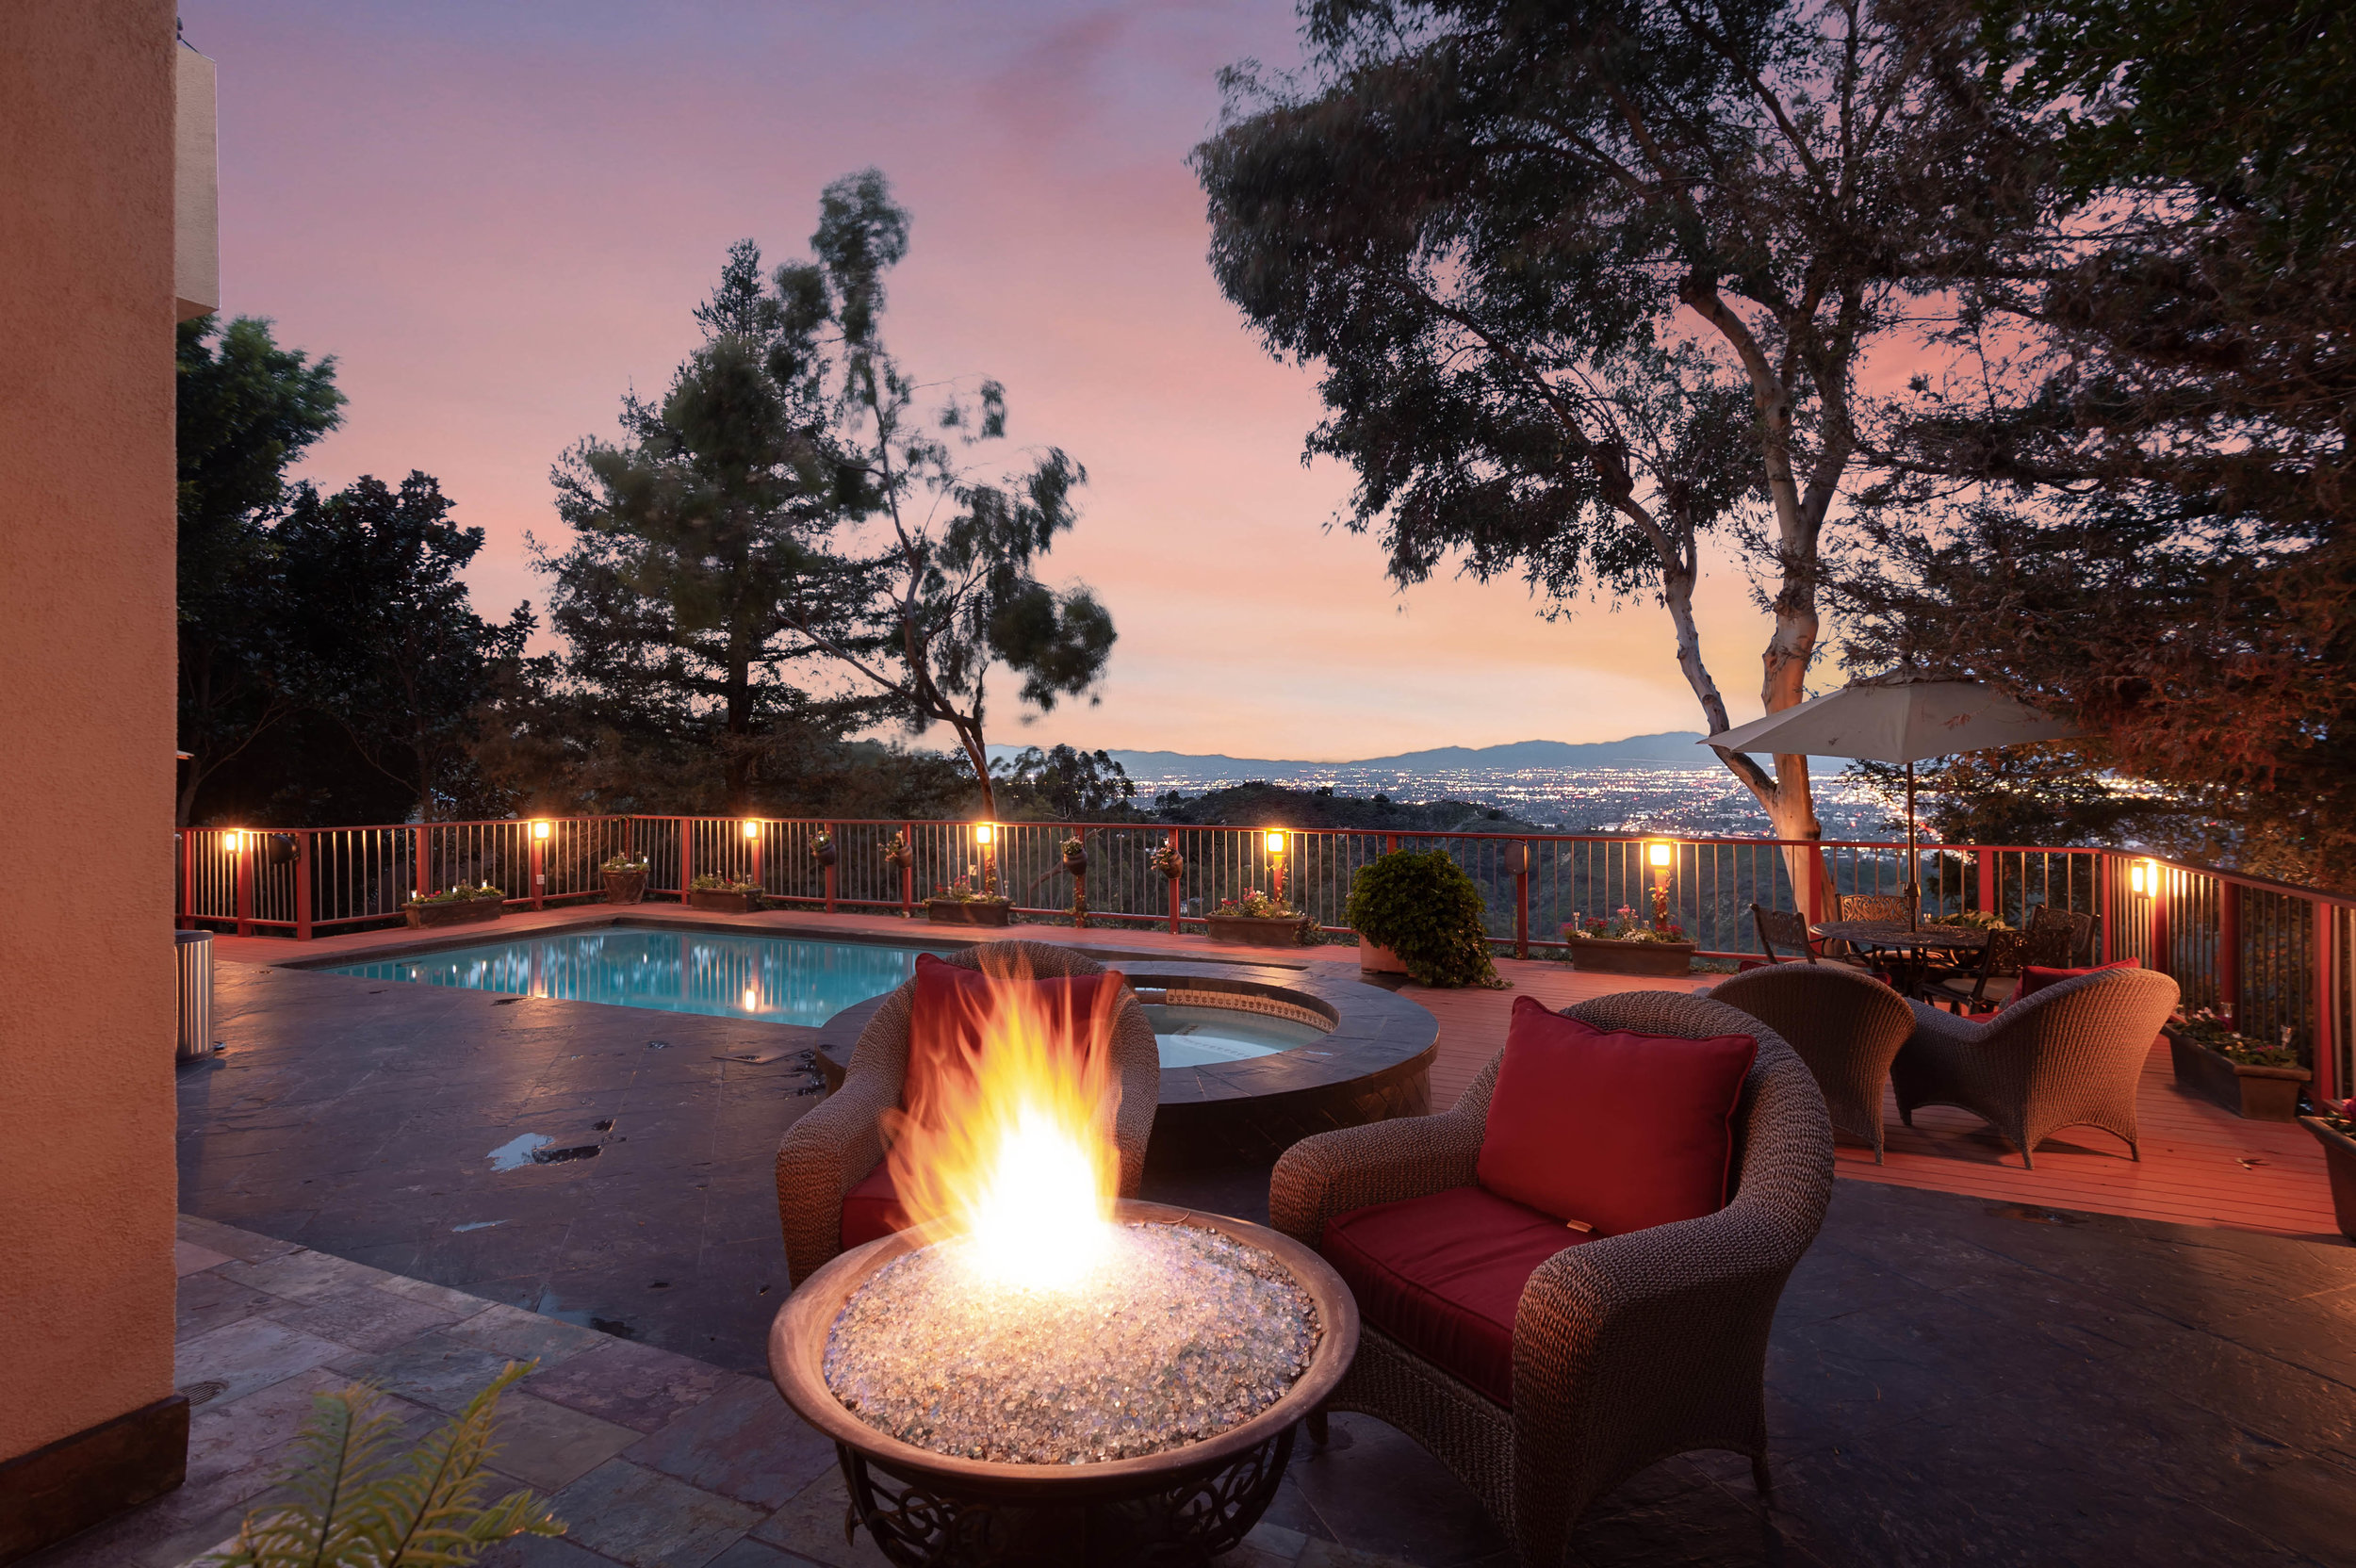 026 Pool 12027 Talus Place Beverly Hills 90210 For Sale Lease The Malibu Life Team Luxury Real Estate.jpg